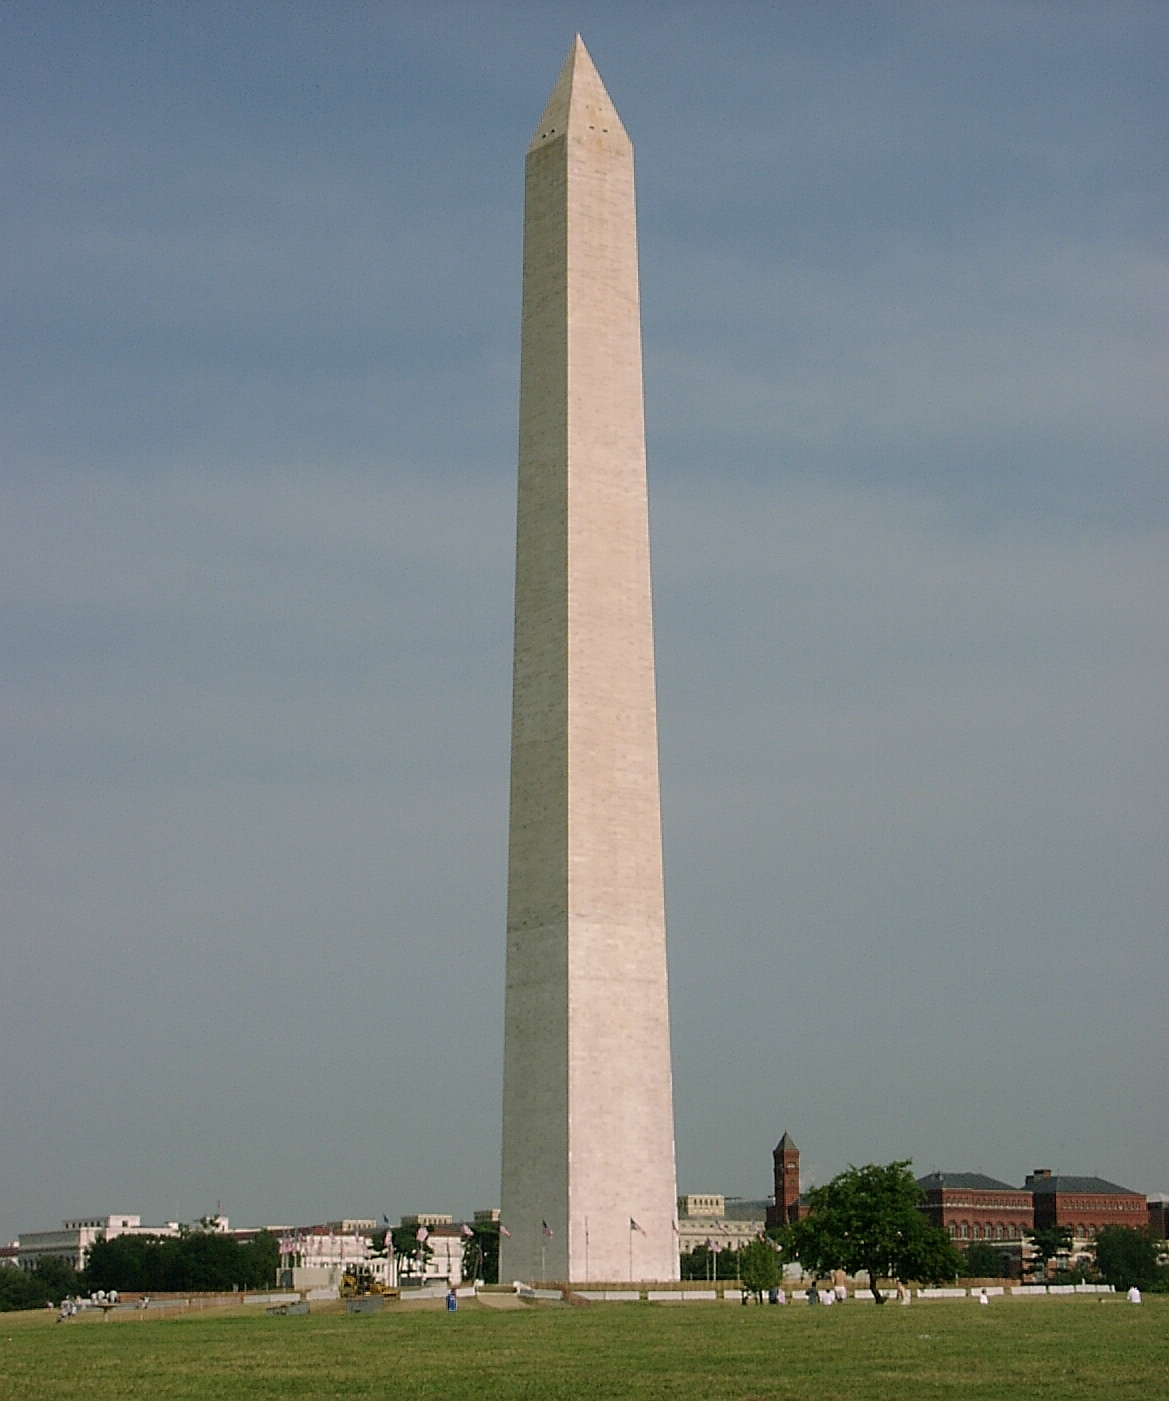 Description WashingtonDC Obelisk.jpg